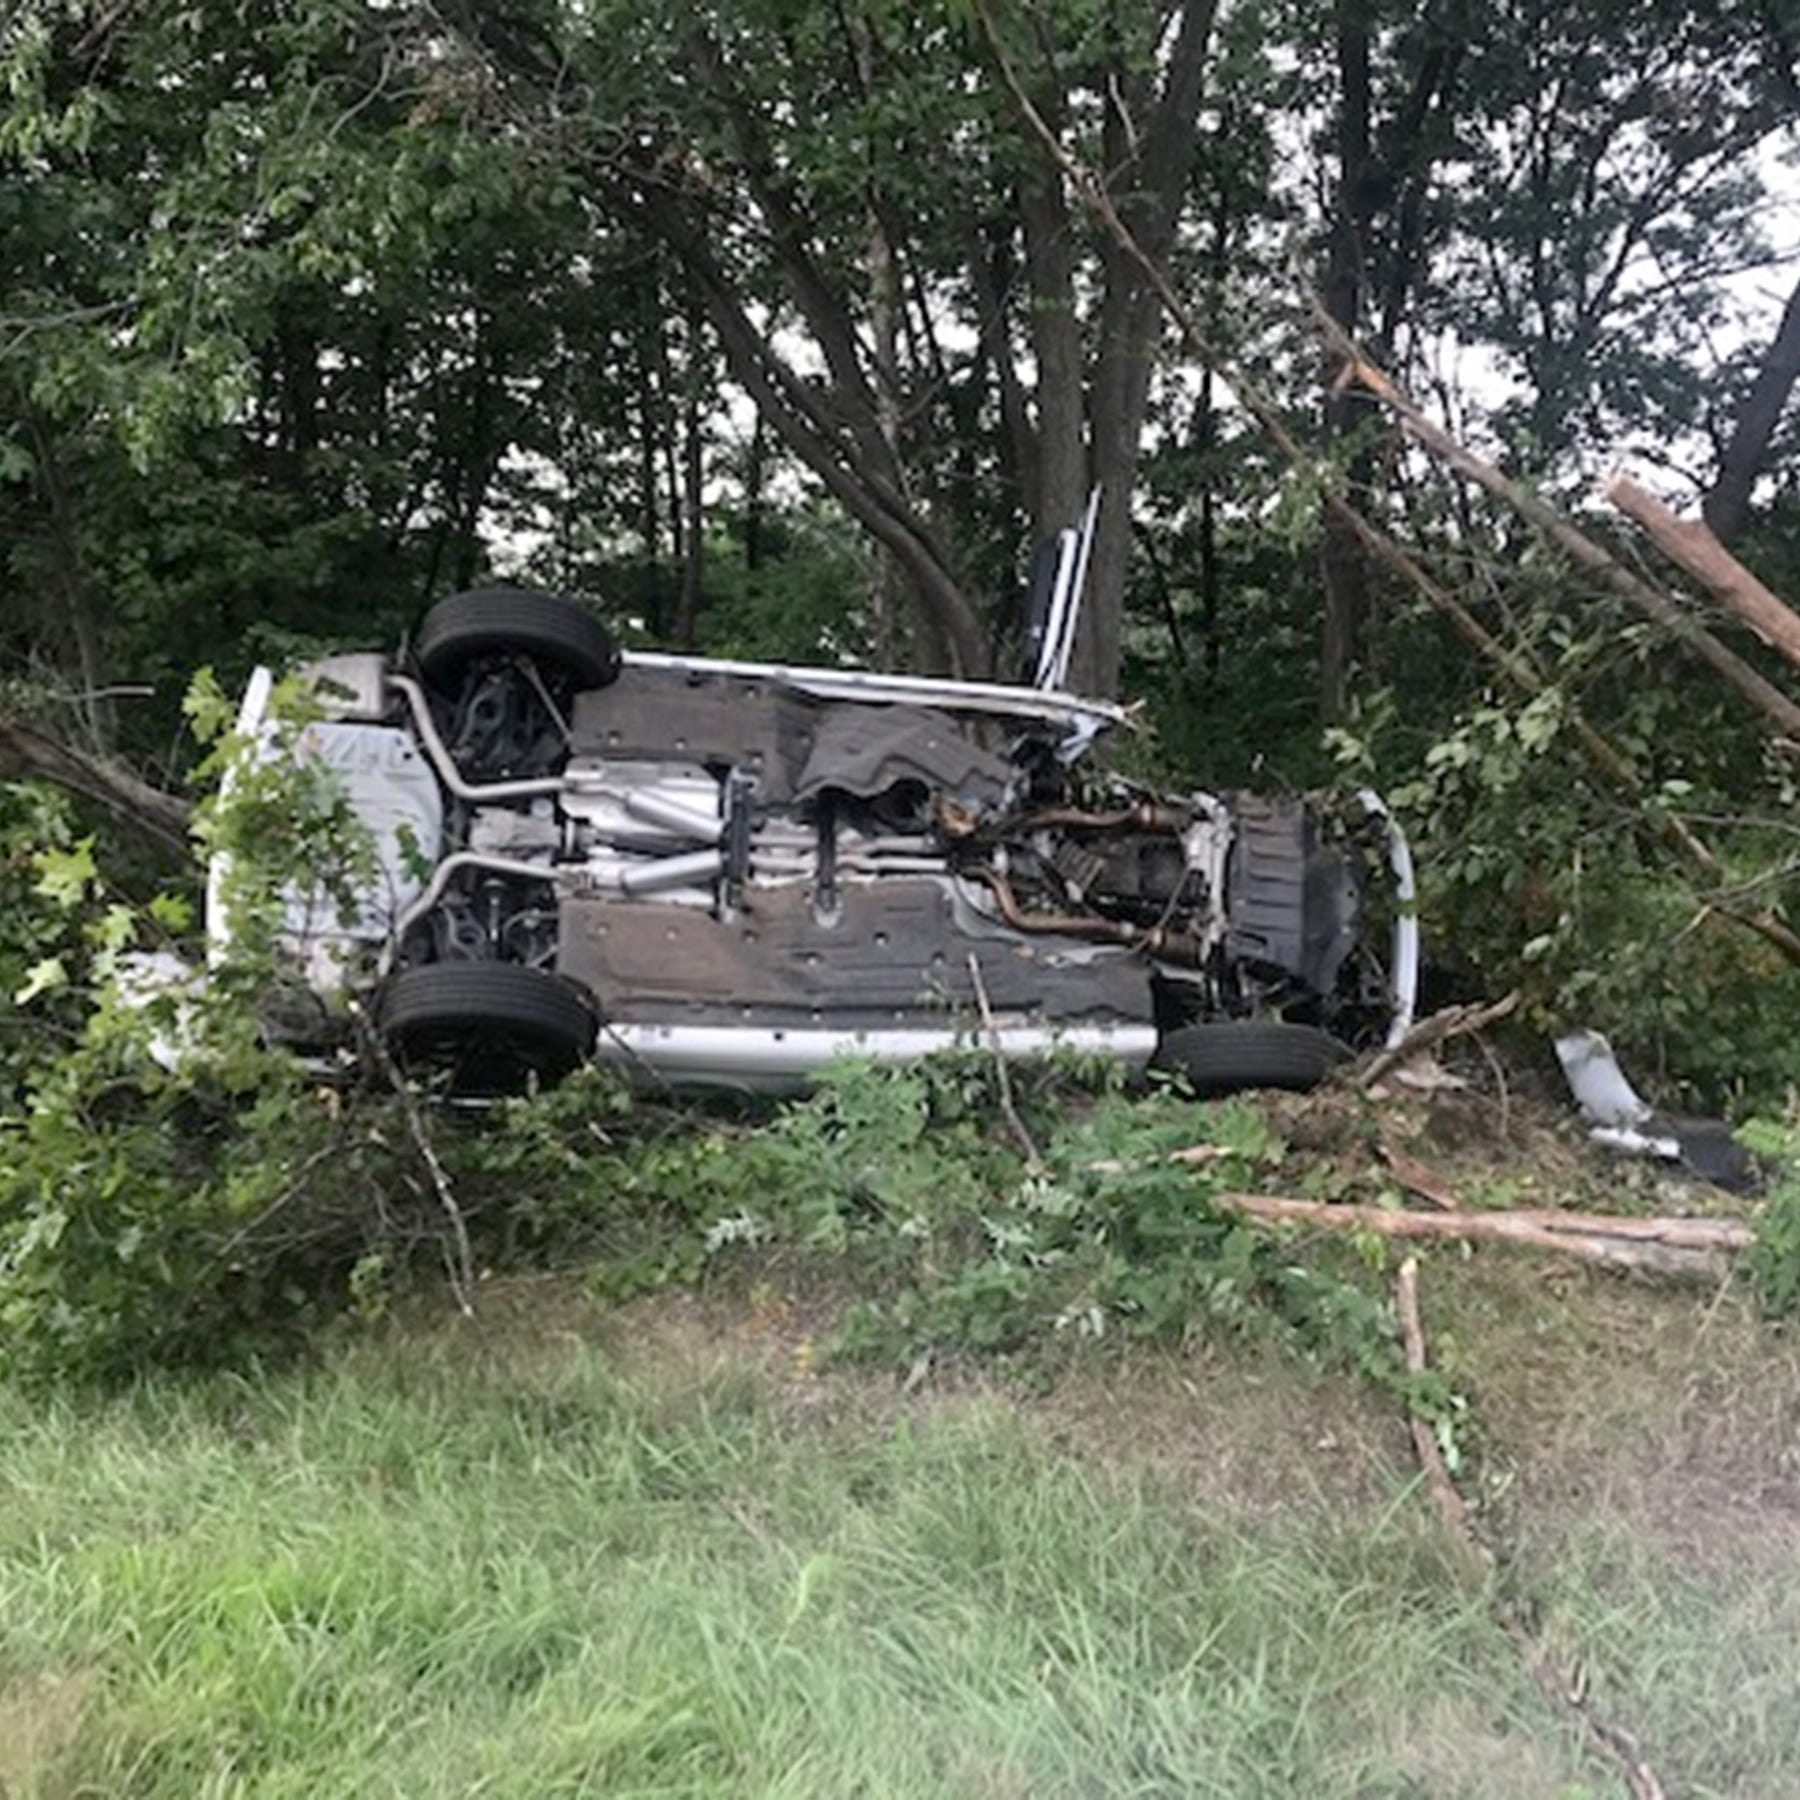 A scene from the accident on August 15, 2018 where Greg Piscopink was severely injured in a car crash when his son, Gregory Piscopink was driving and fell asleep at the wheel.